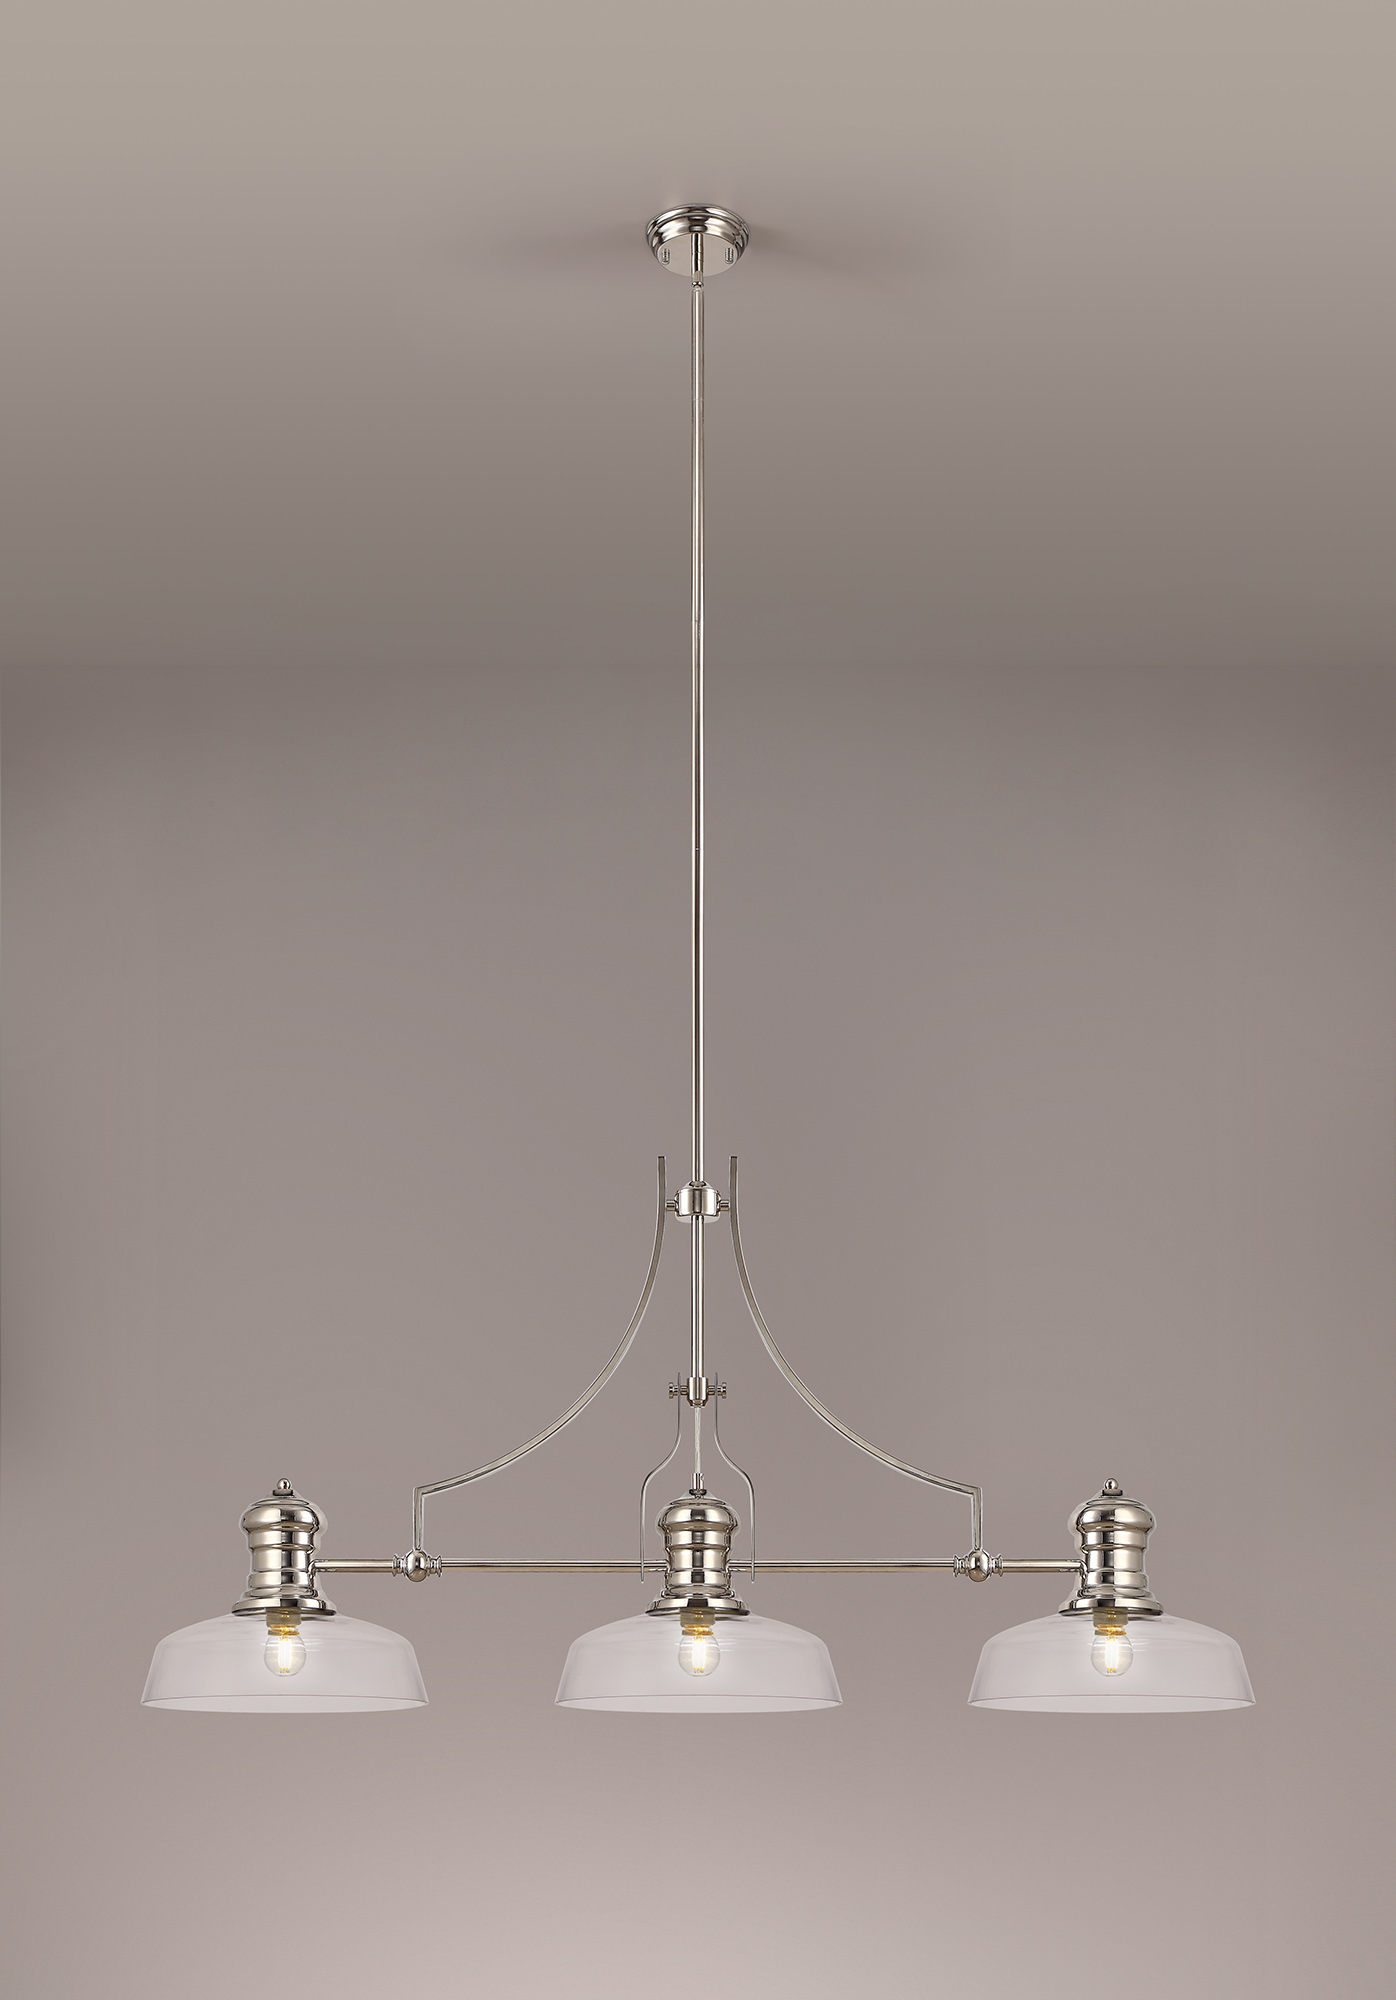 3 Light Linear Pendant E27 With 30cm Flat Round Glass Shade